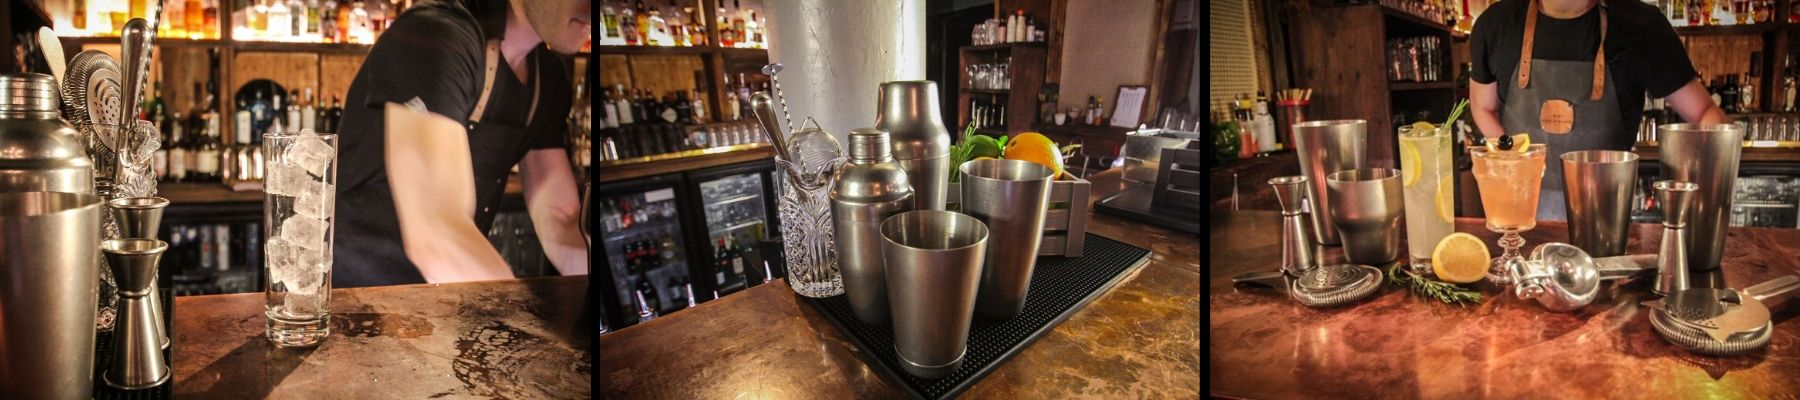 Bar products Hampshire UK - Order Online